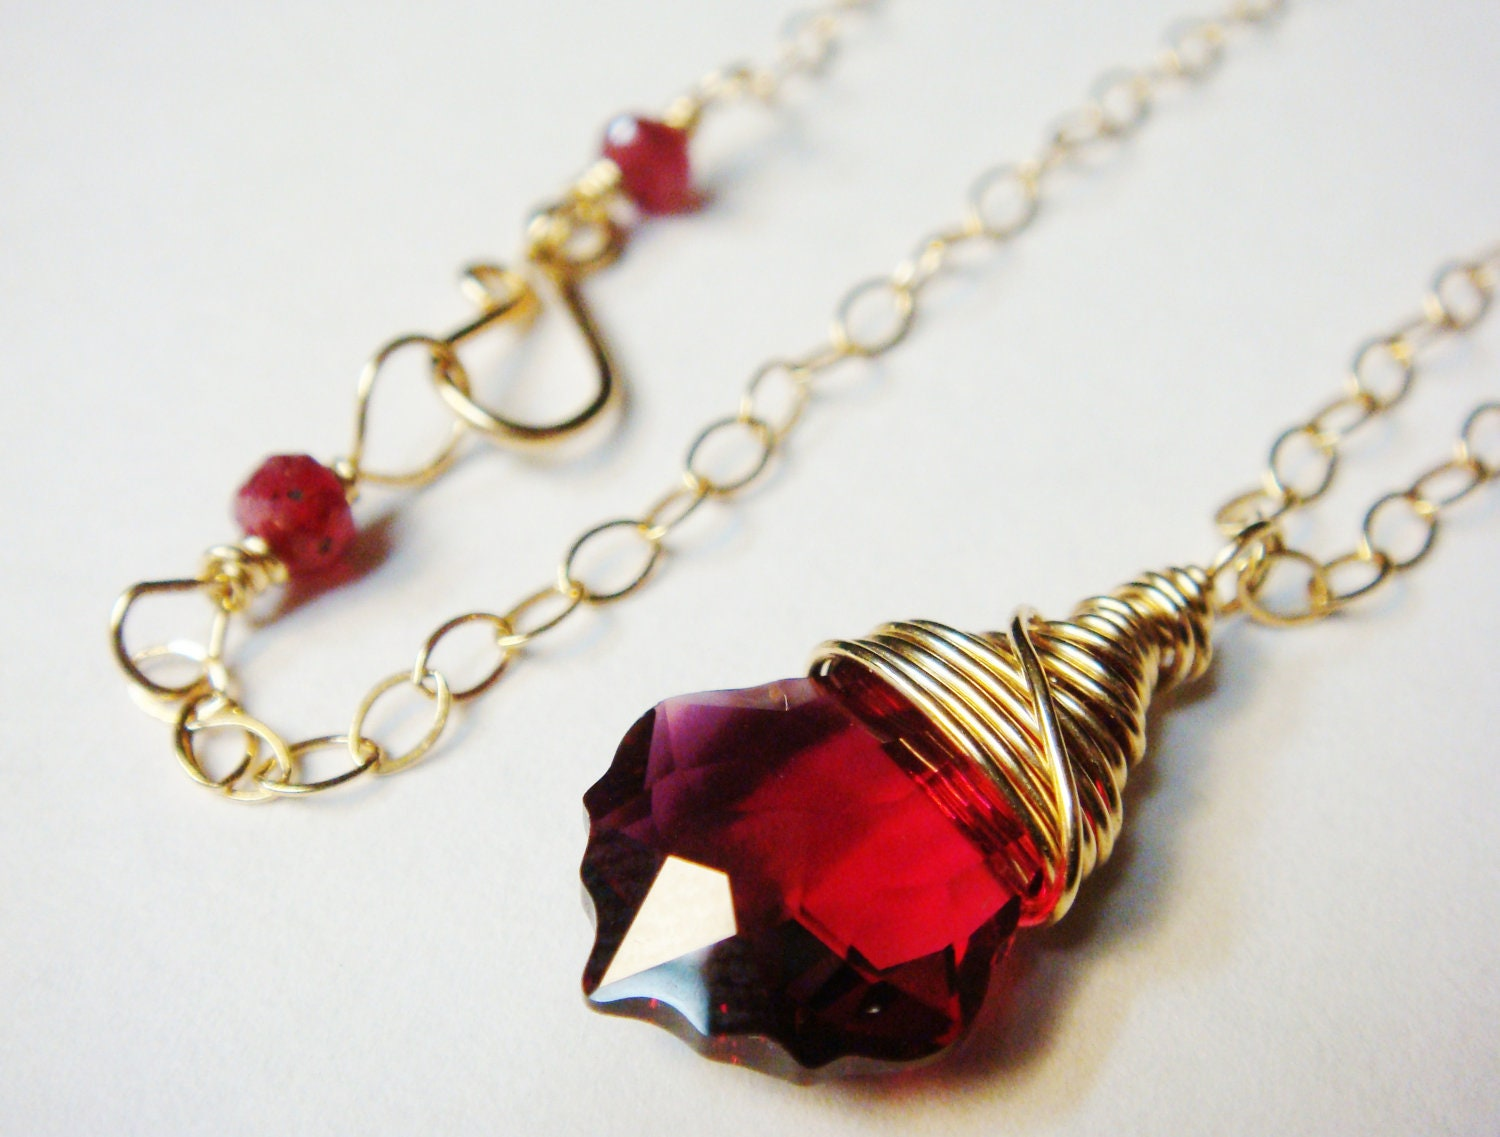 necklace out pendant in yellow icedgold gold red iced products ruby